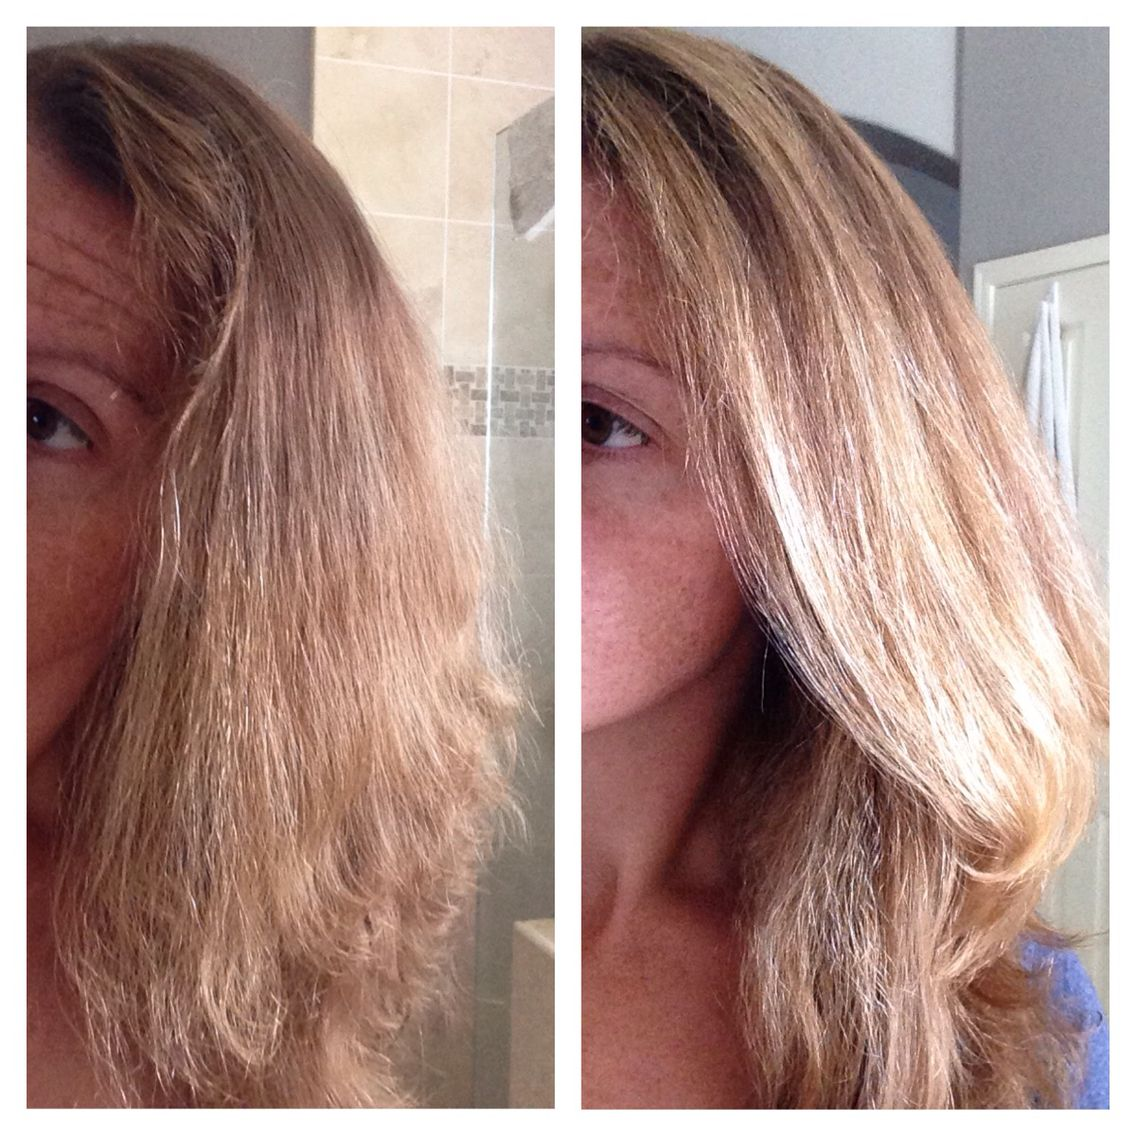 Clairol Shimmer Lights Shampoo Before And After Highlights Blonde Balayage Ombre Purpleshampoo Hair Styles Shimmer Lights Shampoo Long Hair Styles